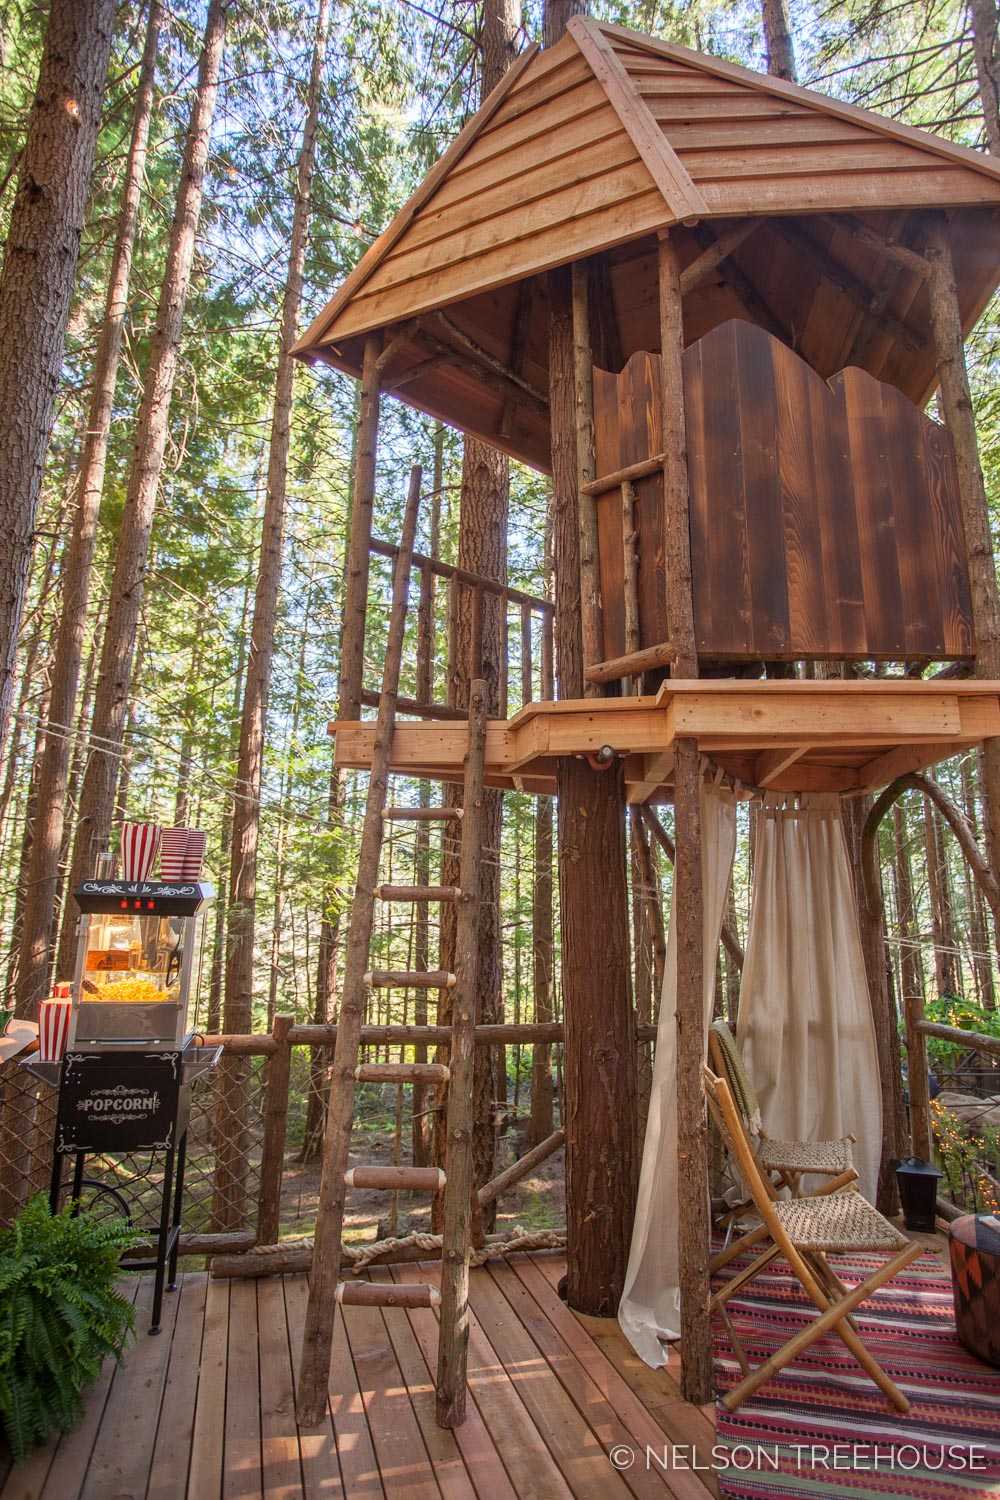 Treetop-Movie-Theater-2018-Nelson-Treehouse-641.jpg